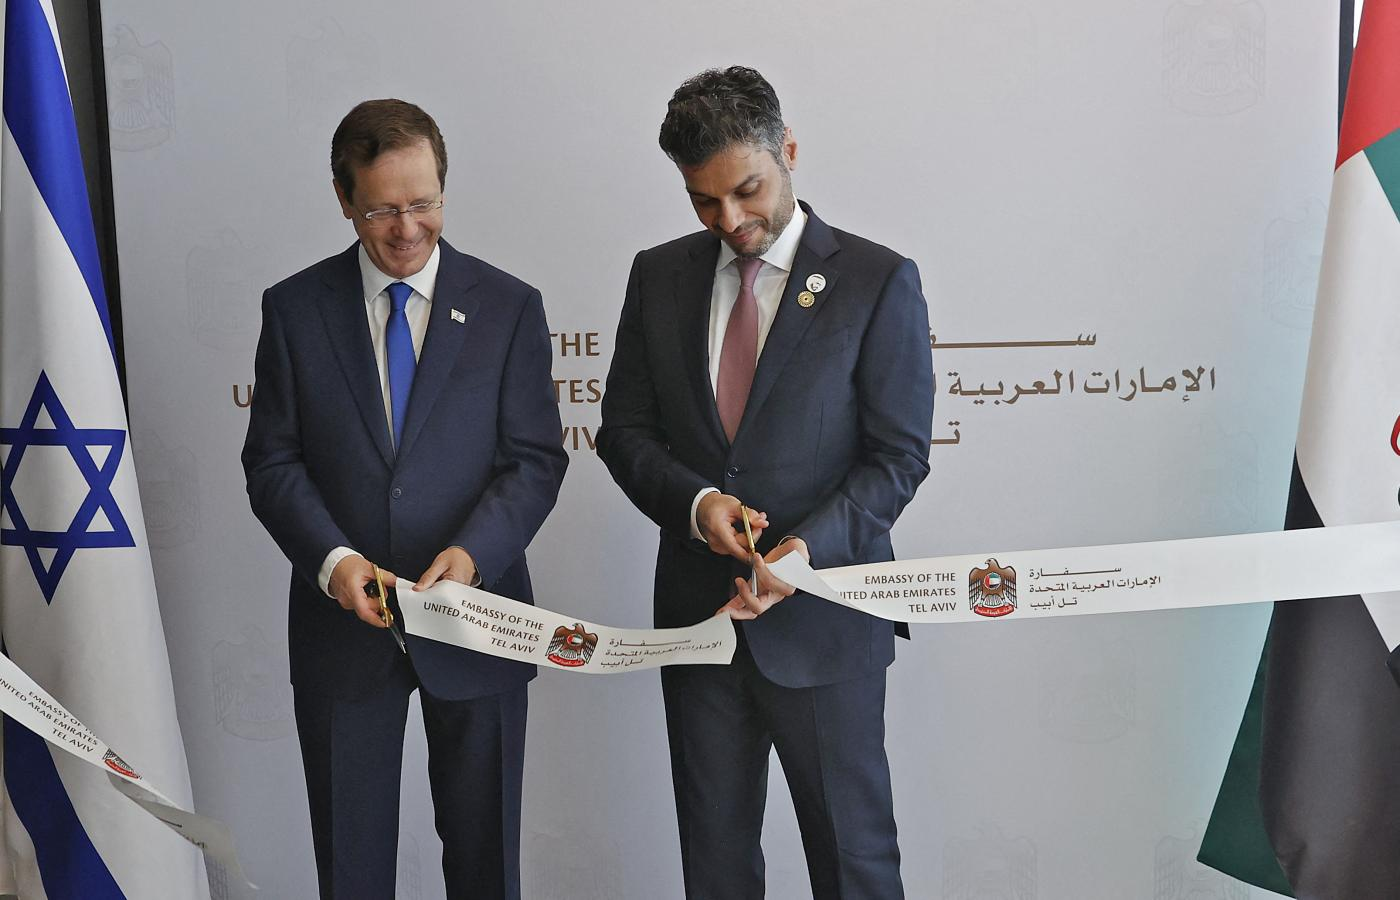 UAE becomes first Arab country to open embassy in Israel